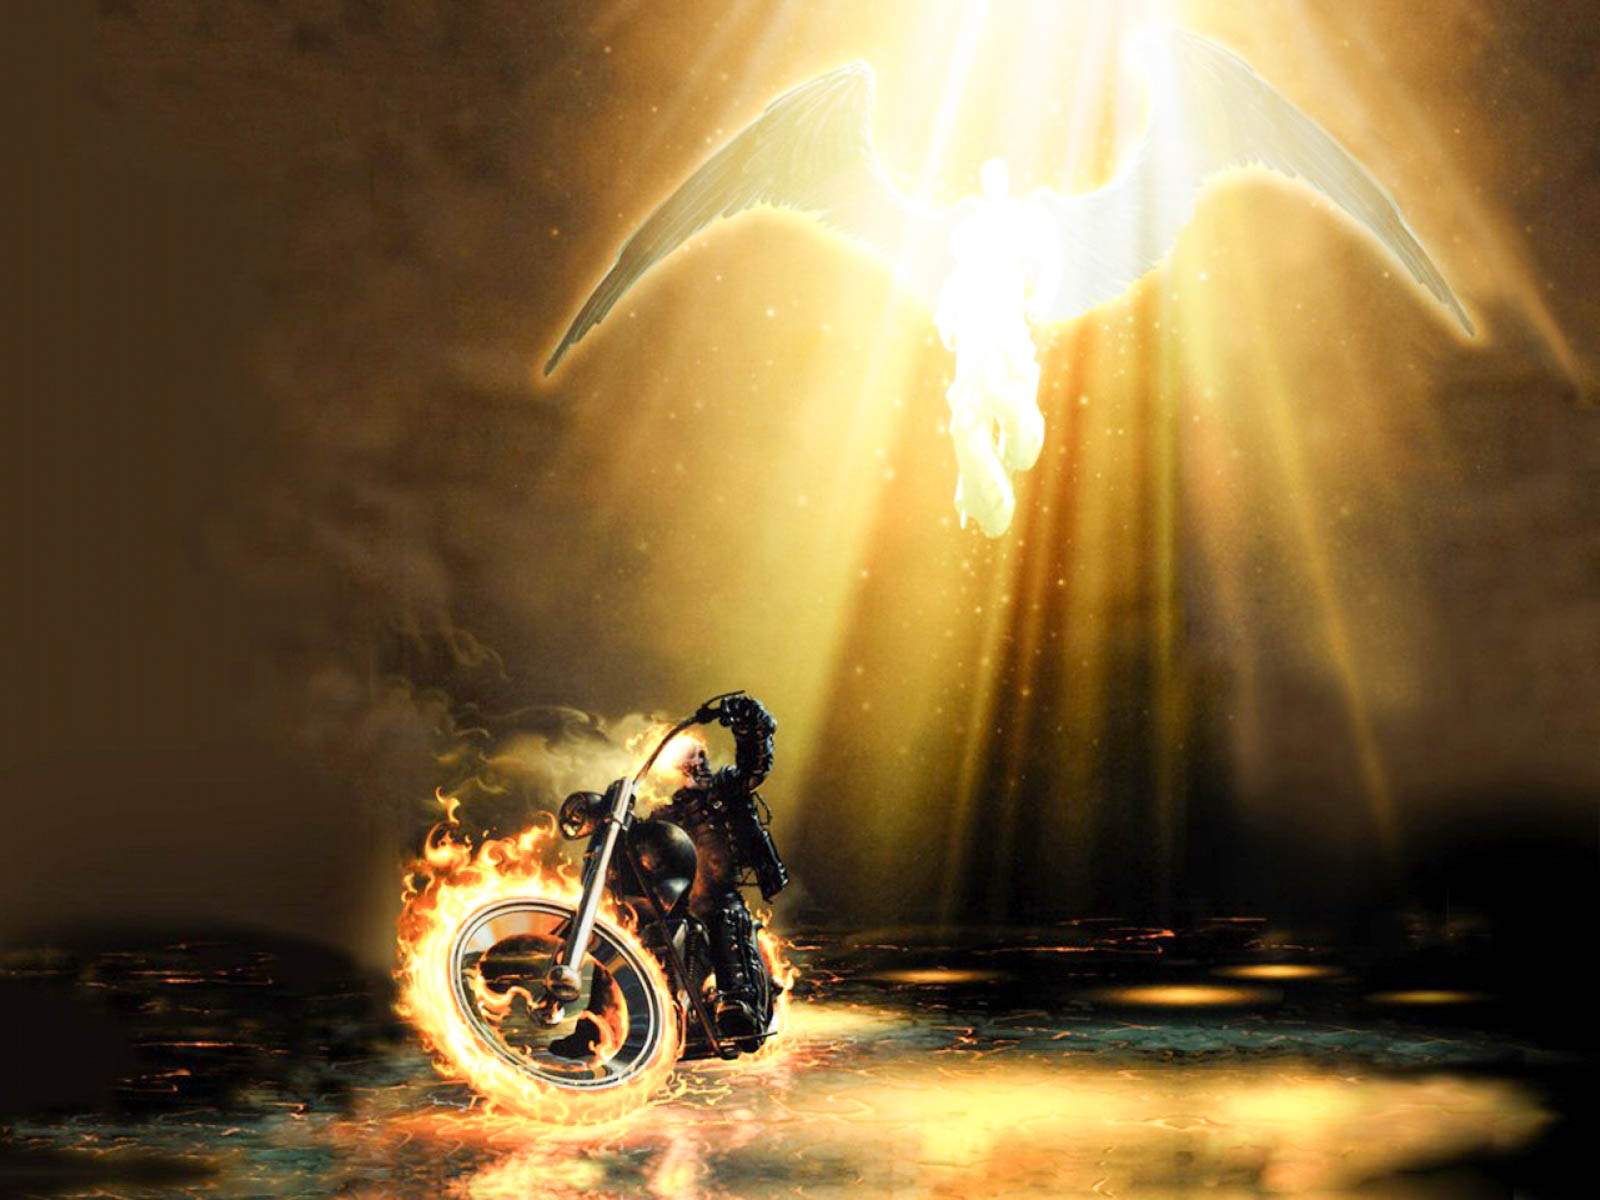 Smartphone Anime Wallpaper Ghost Rider Amazing Wallpaers Hd Pictures All Hd Wallpapers